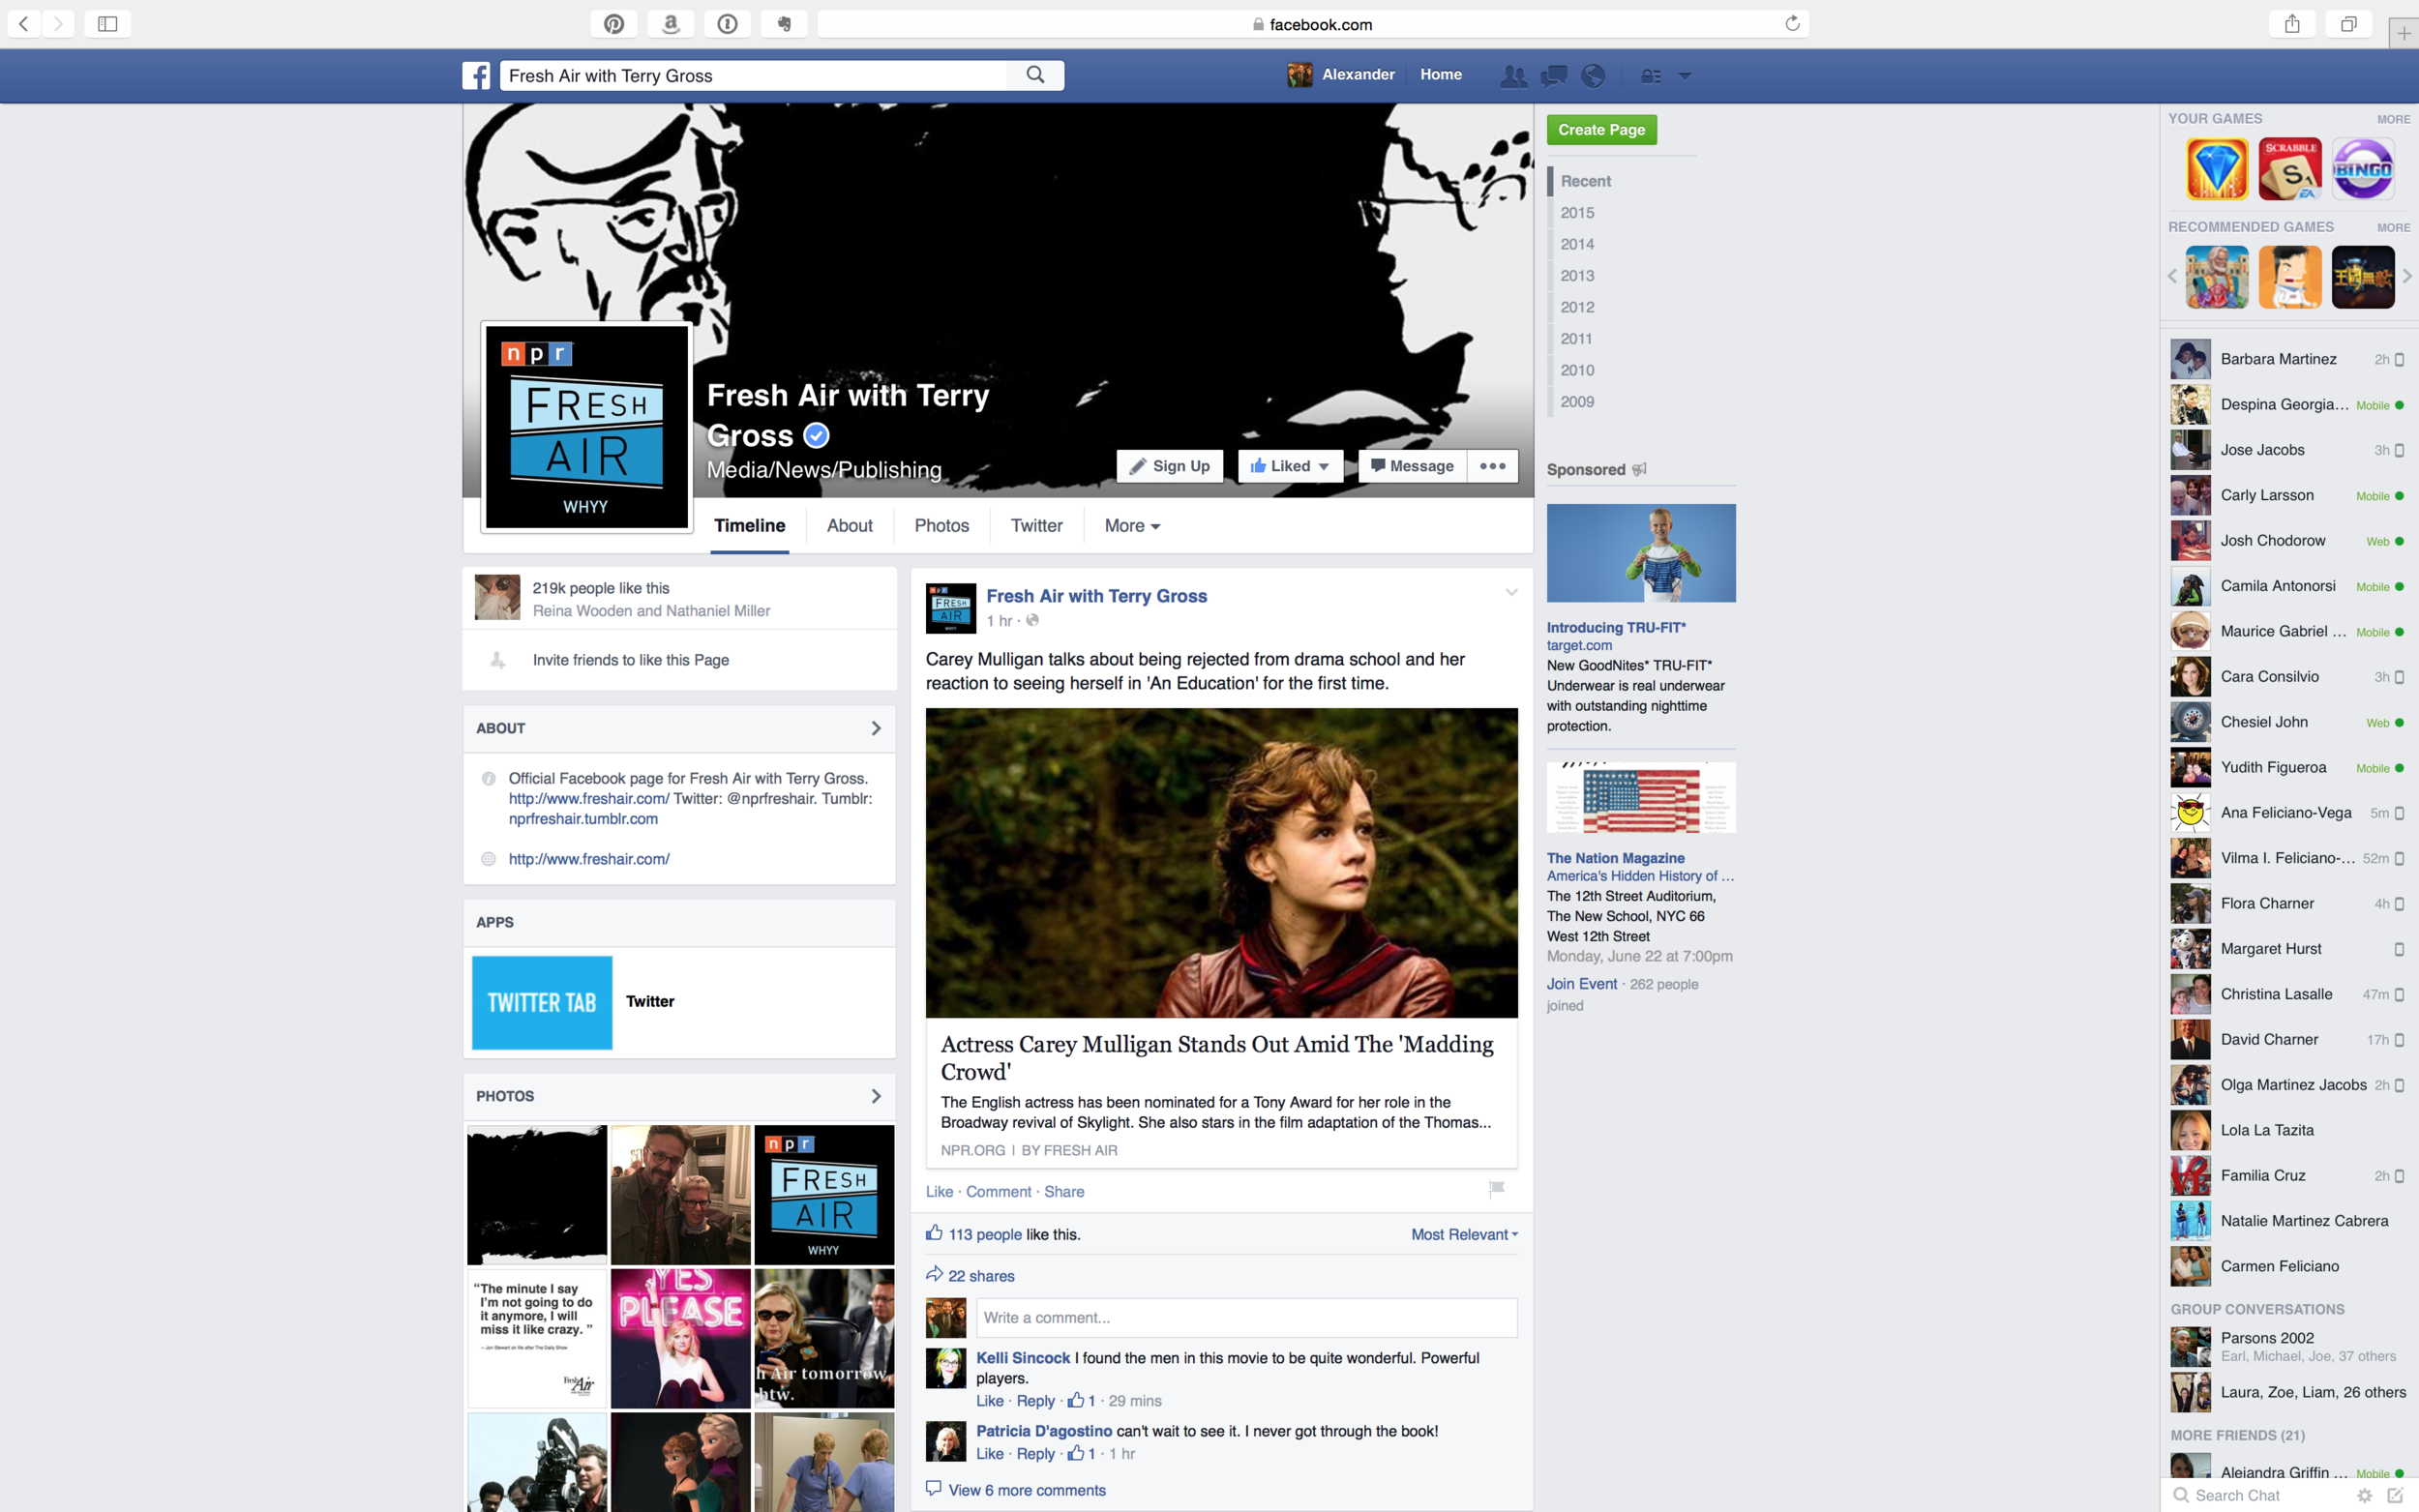 Fresh Air with Terry Gross Facebook Page